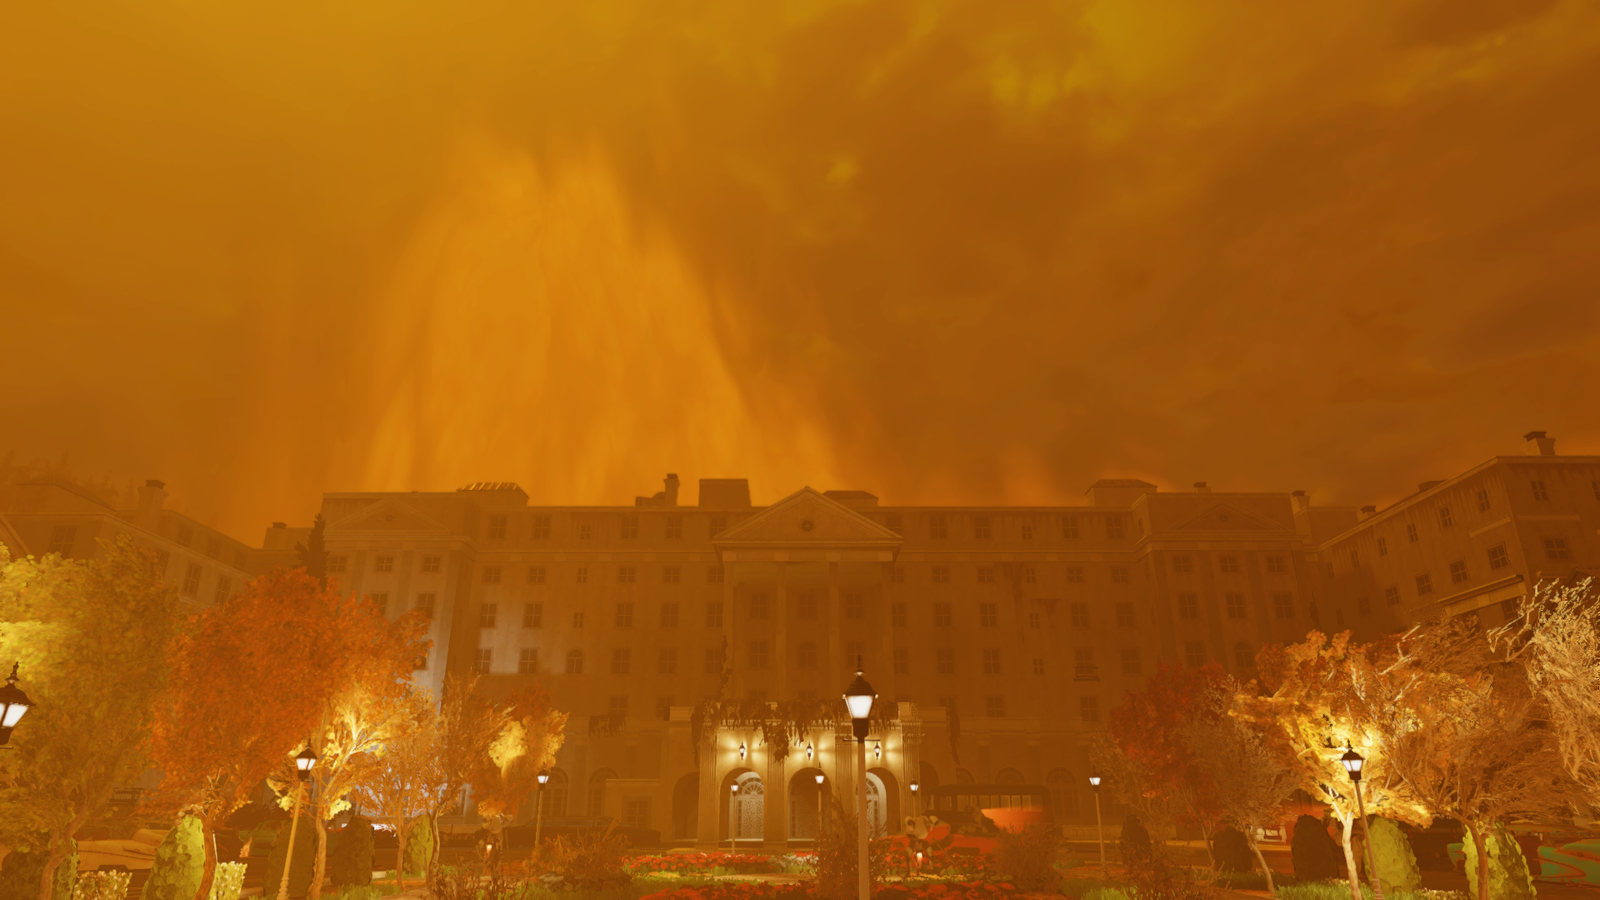 The Whitespring Resort during a nuclear strike event.